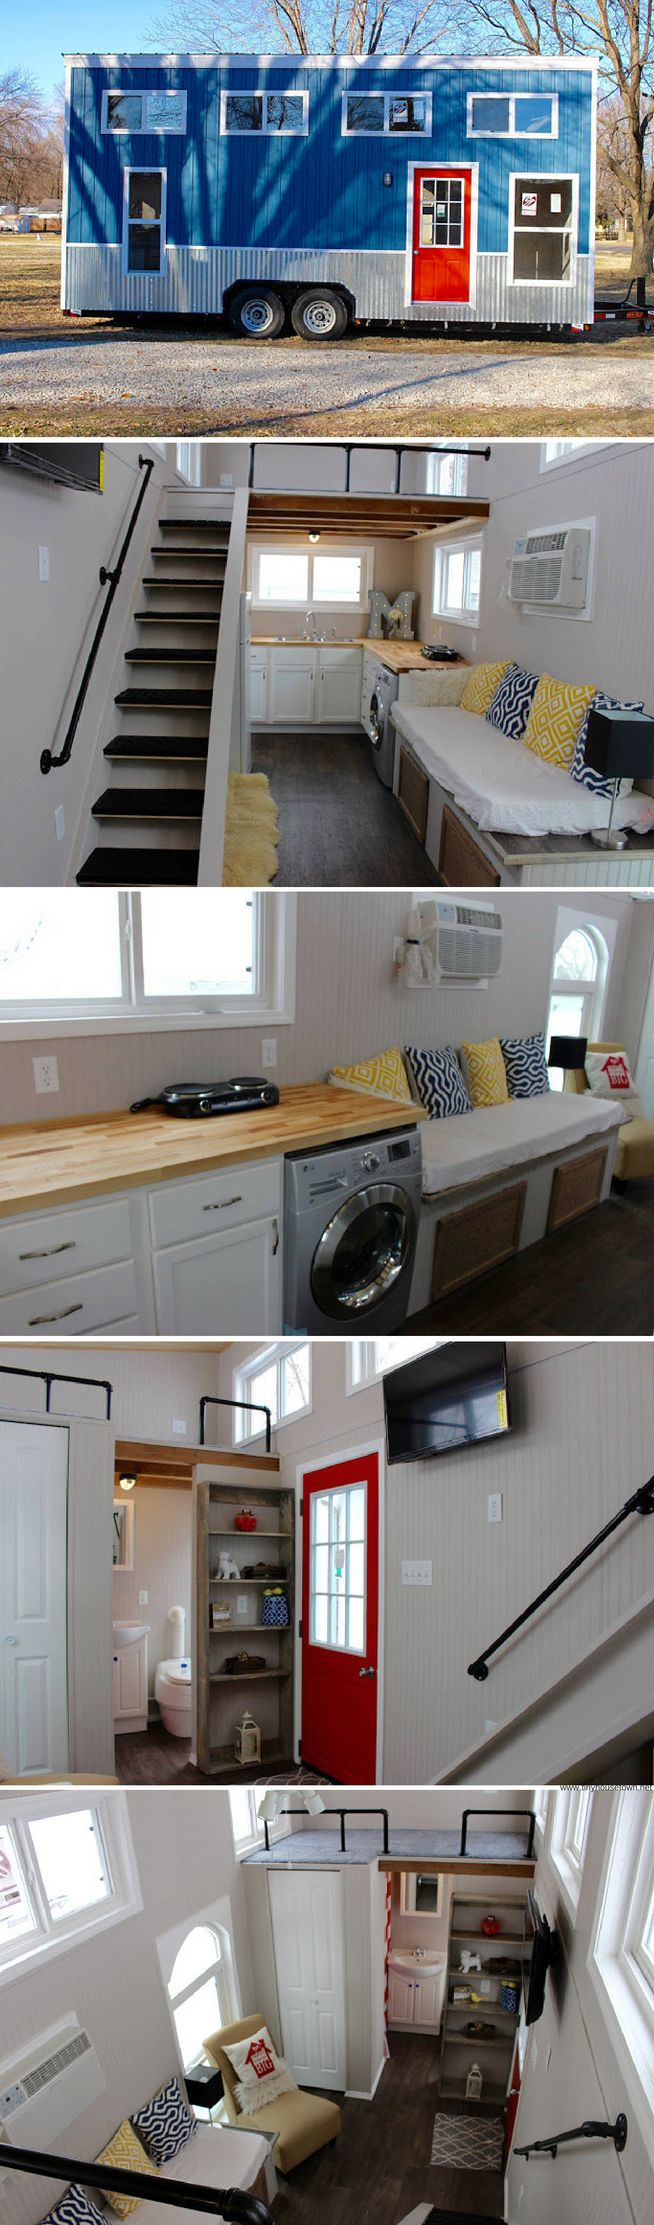 The Mini Mansion from Relax Shacks: a 273 sq ft tiny house available for sale in Saint Peters, MO